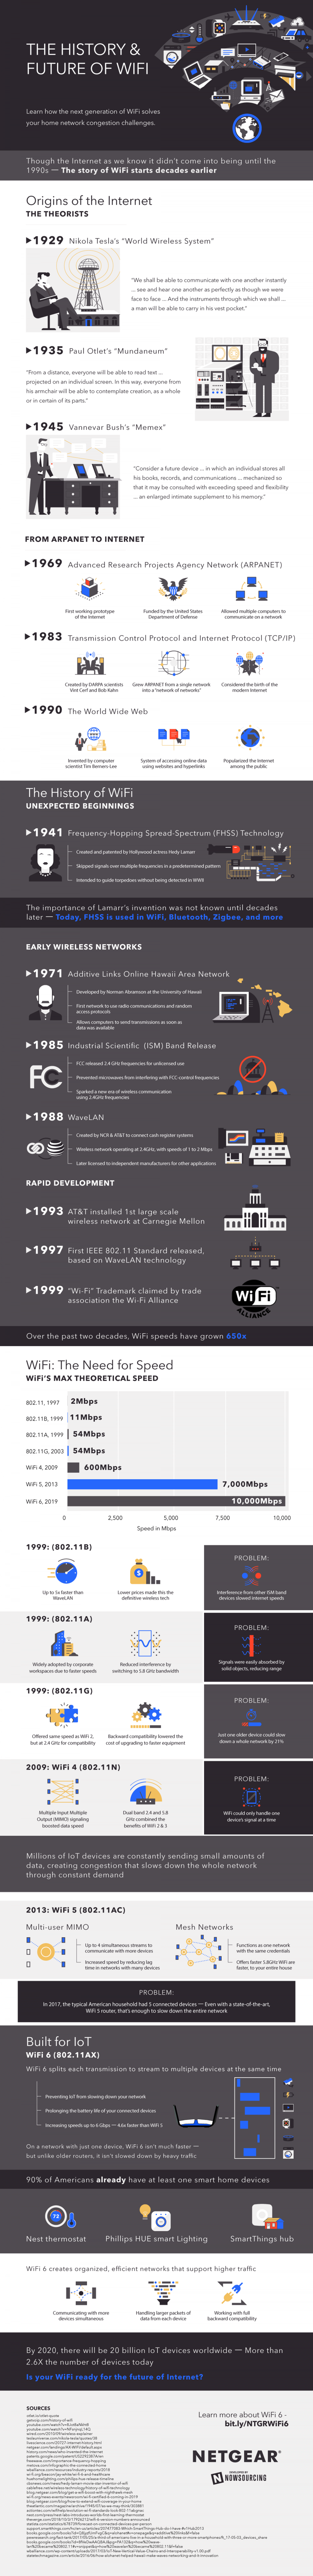 The History & Future Of WiFi Infographic